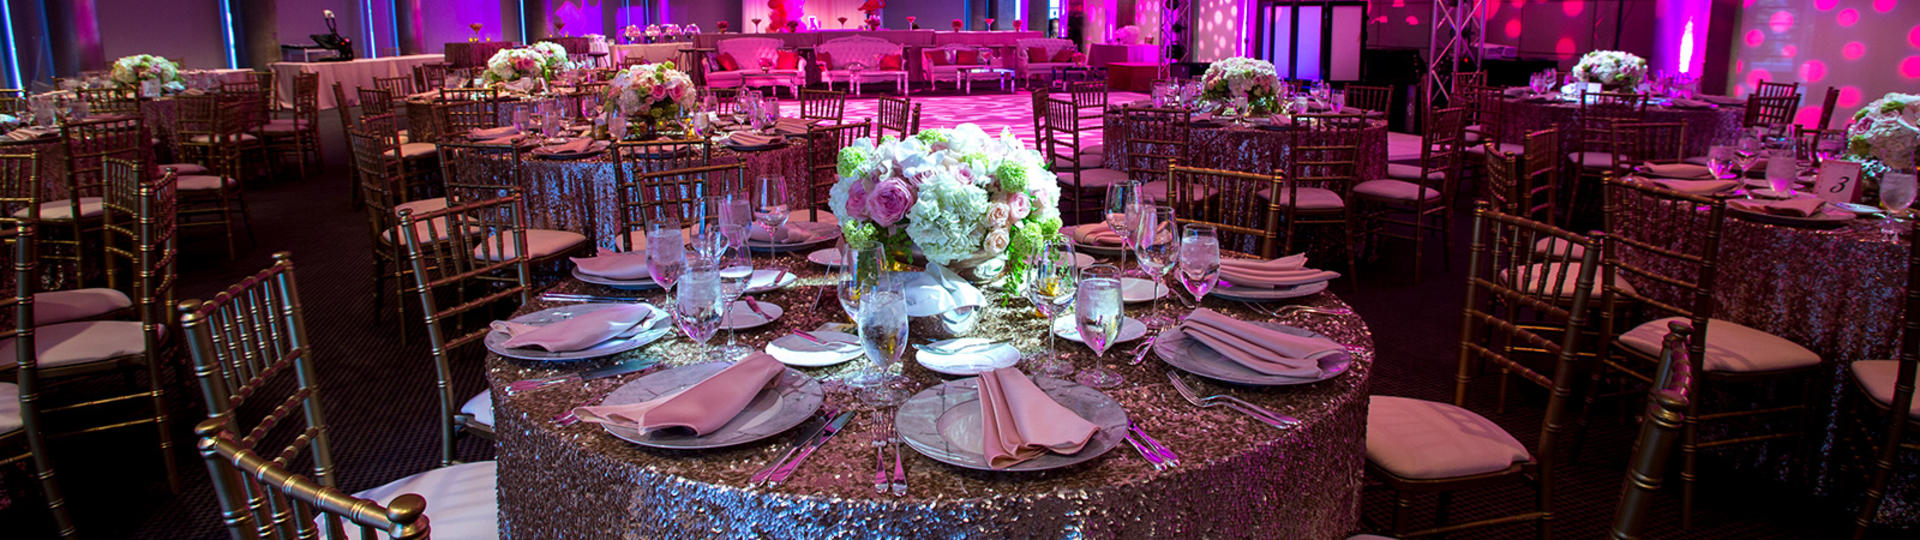 Plan an event party